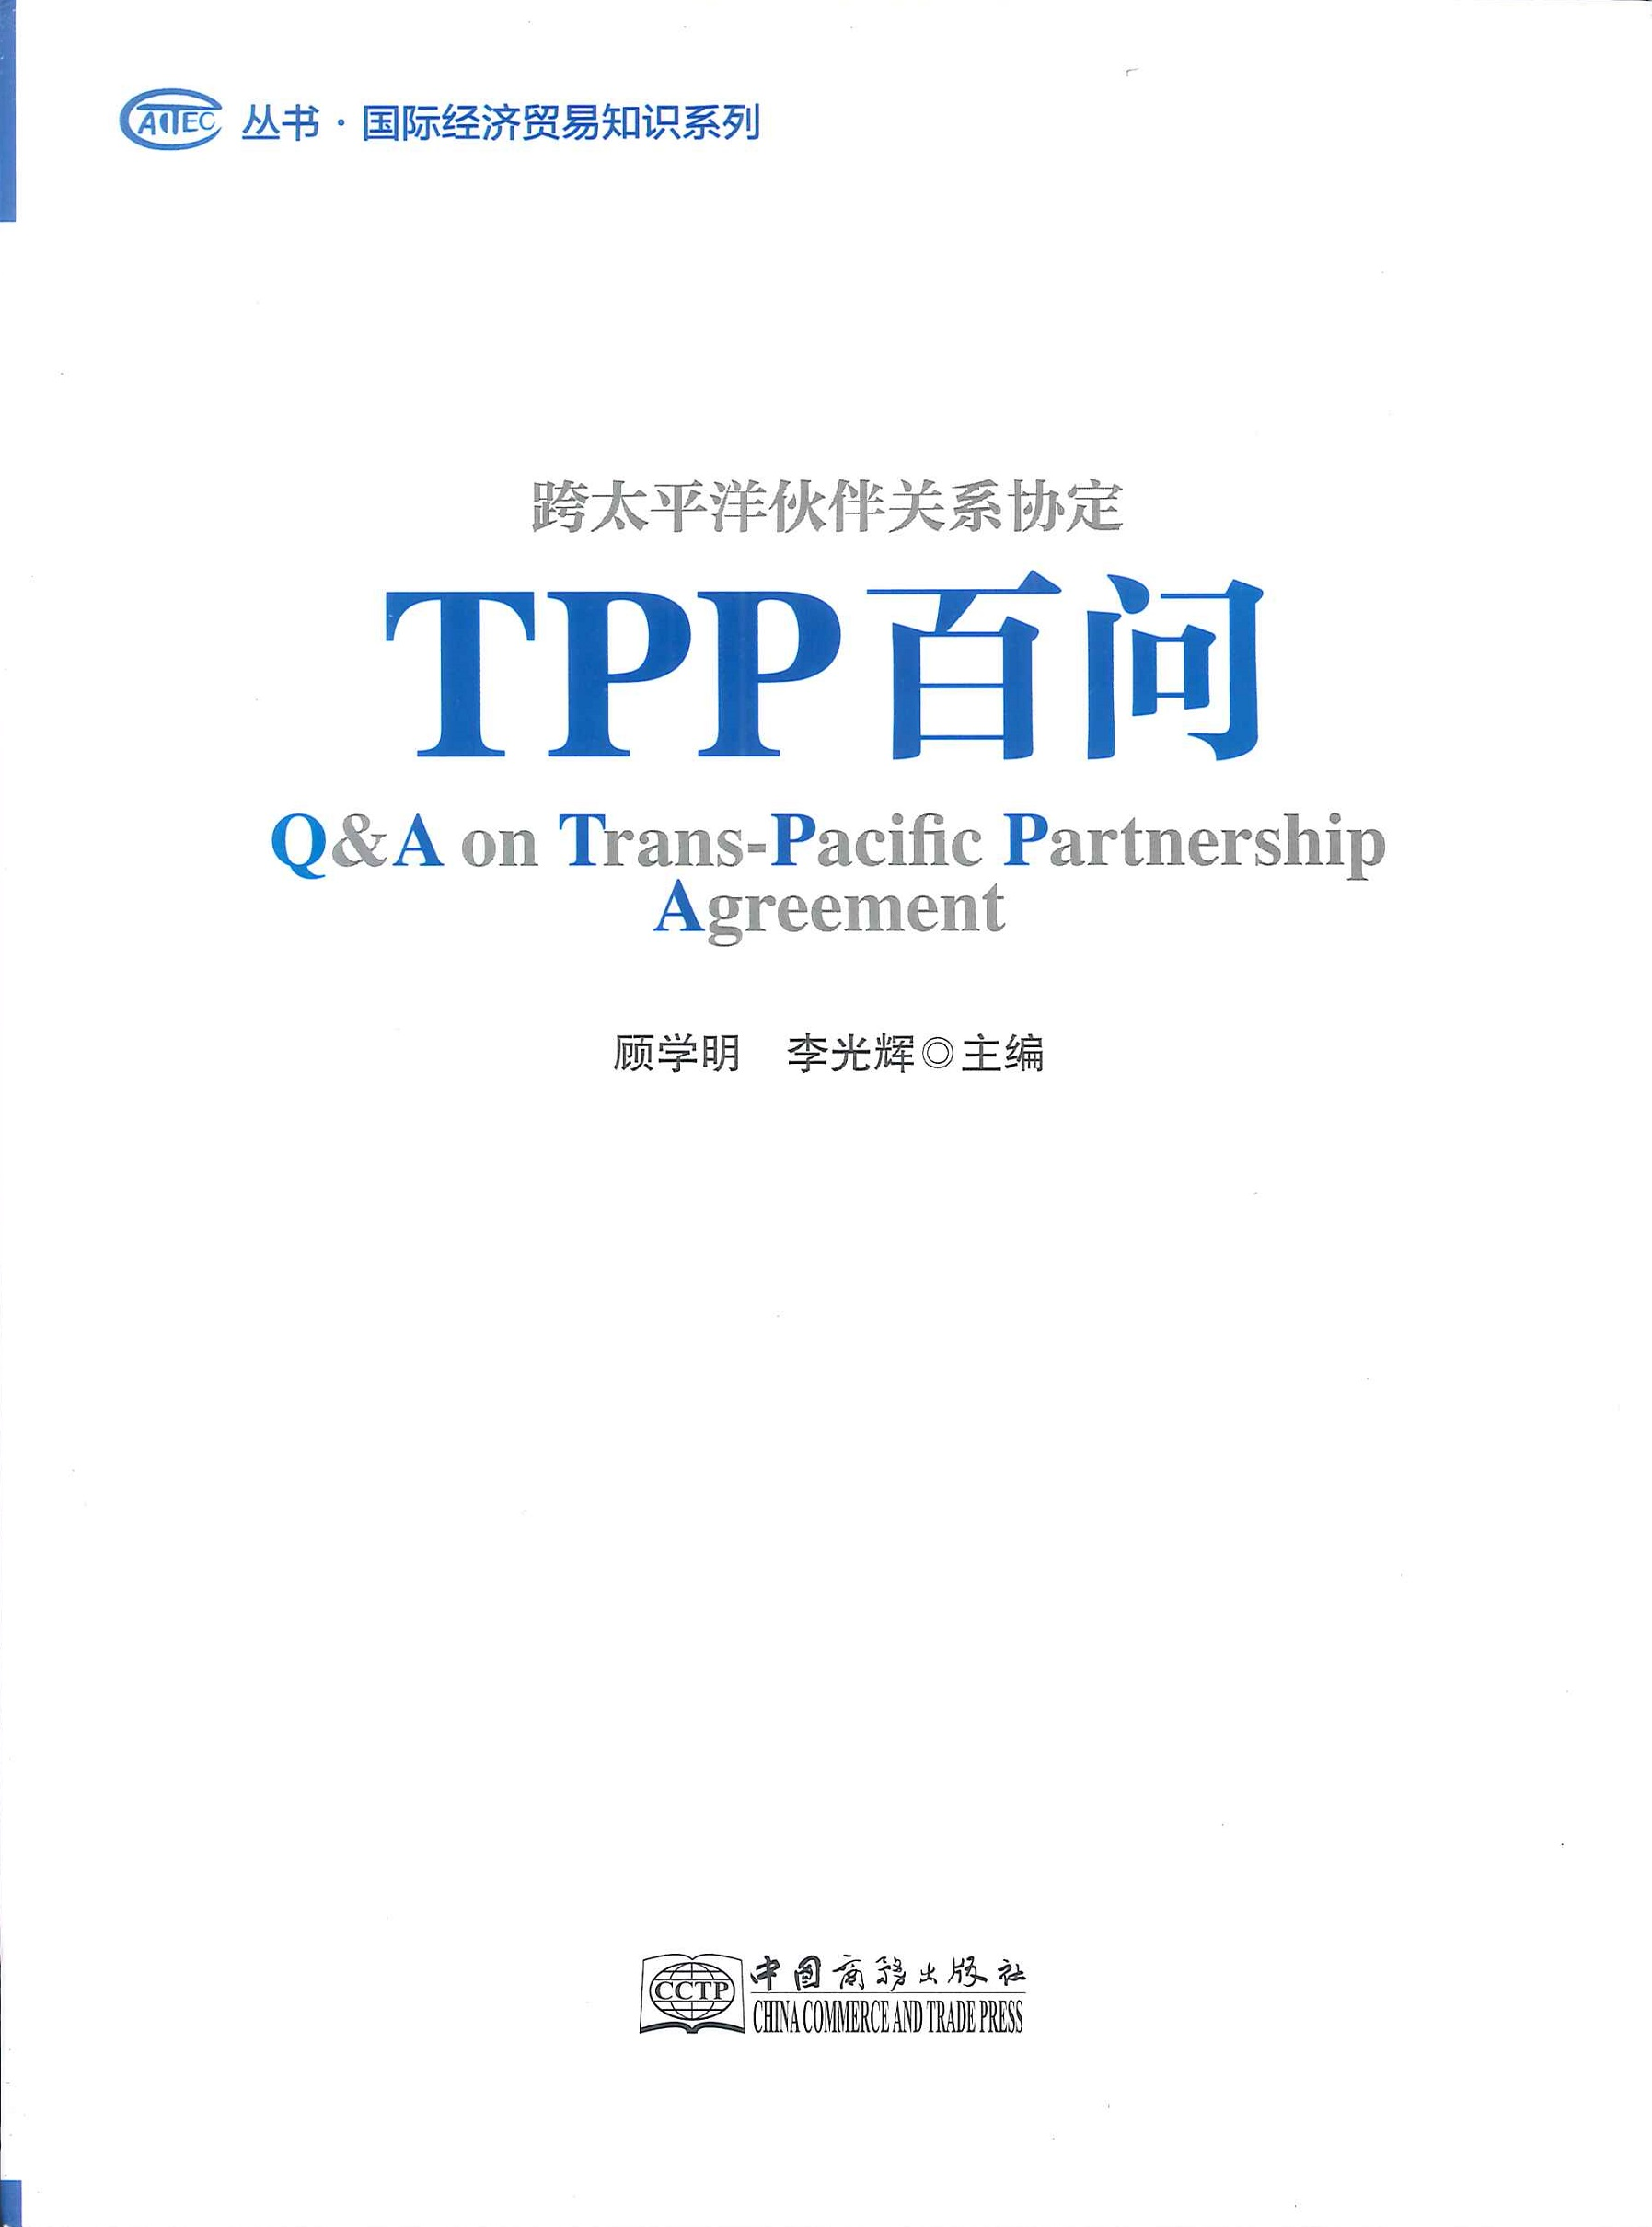 TPP百问:跨太平洋伙伴关系协定=Q&A on Trans-Pacific Partnership Agreement